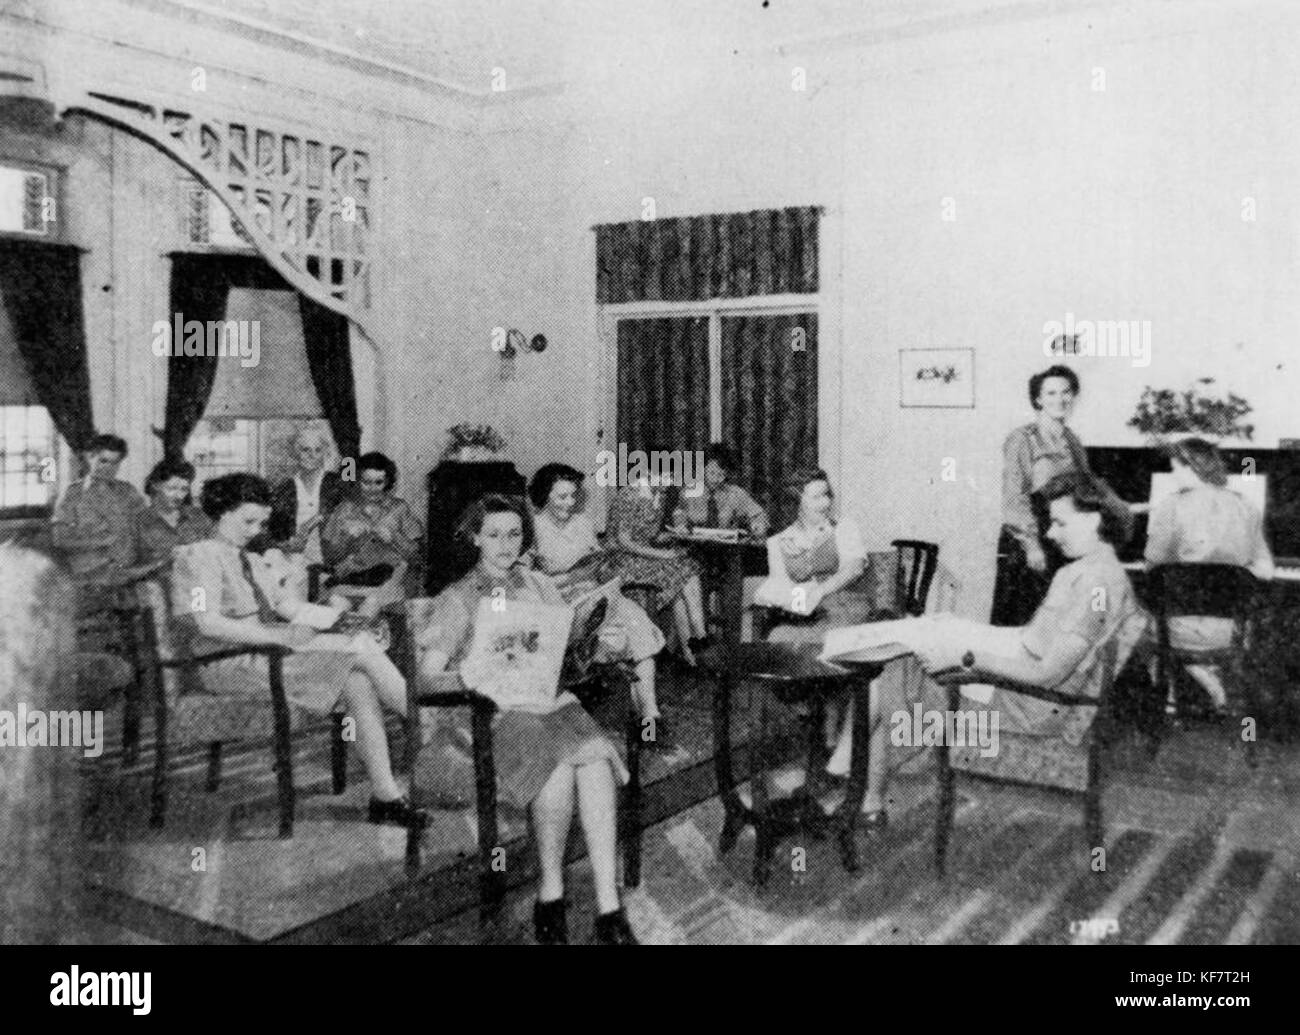 1 103067 Group of servicewomen in the lounge room at 'Wairuna' in Highgate Hill, Brisbane in the 1940s - Stock Image